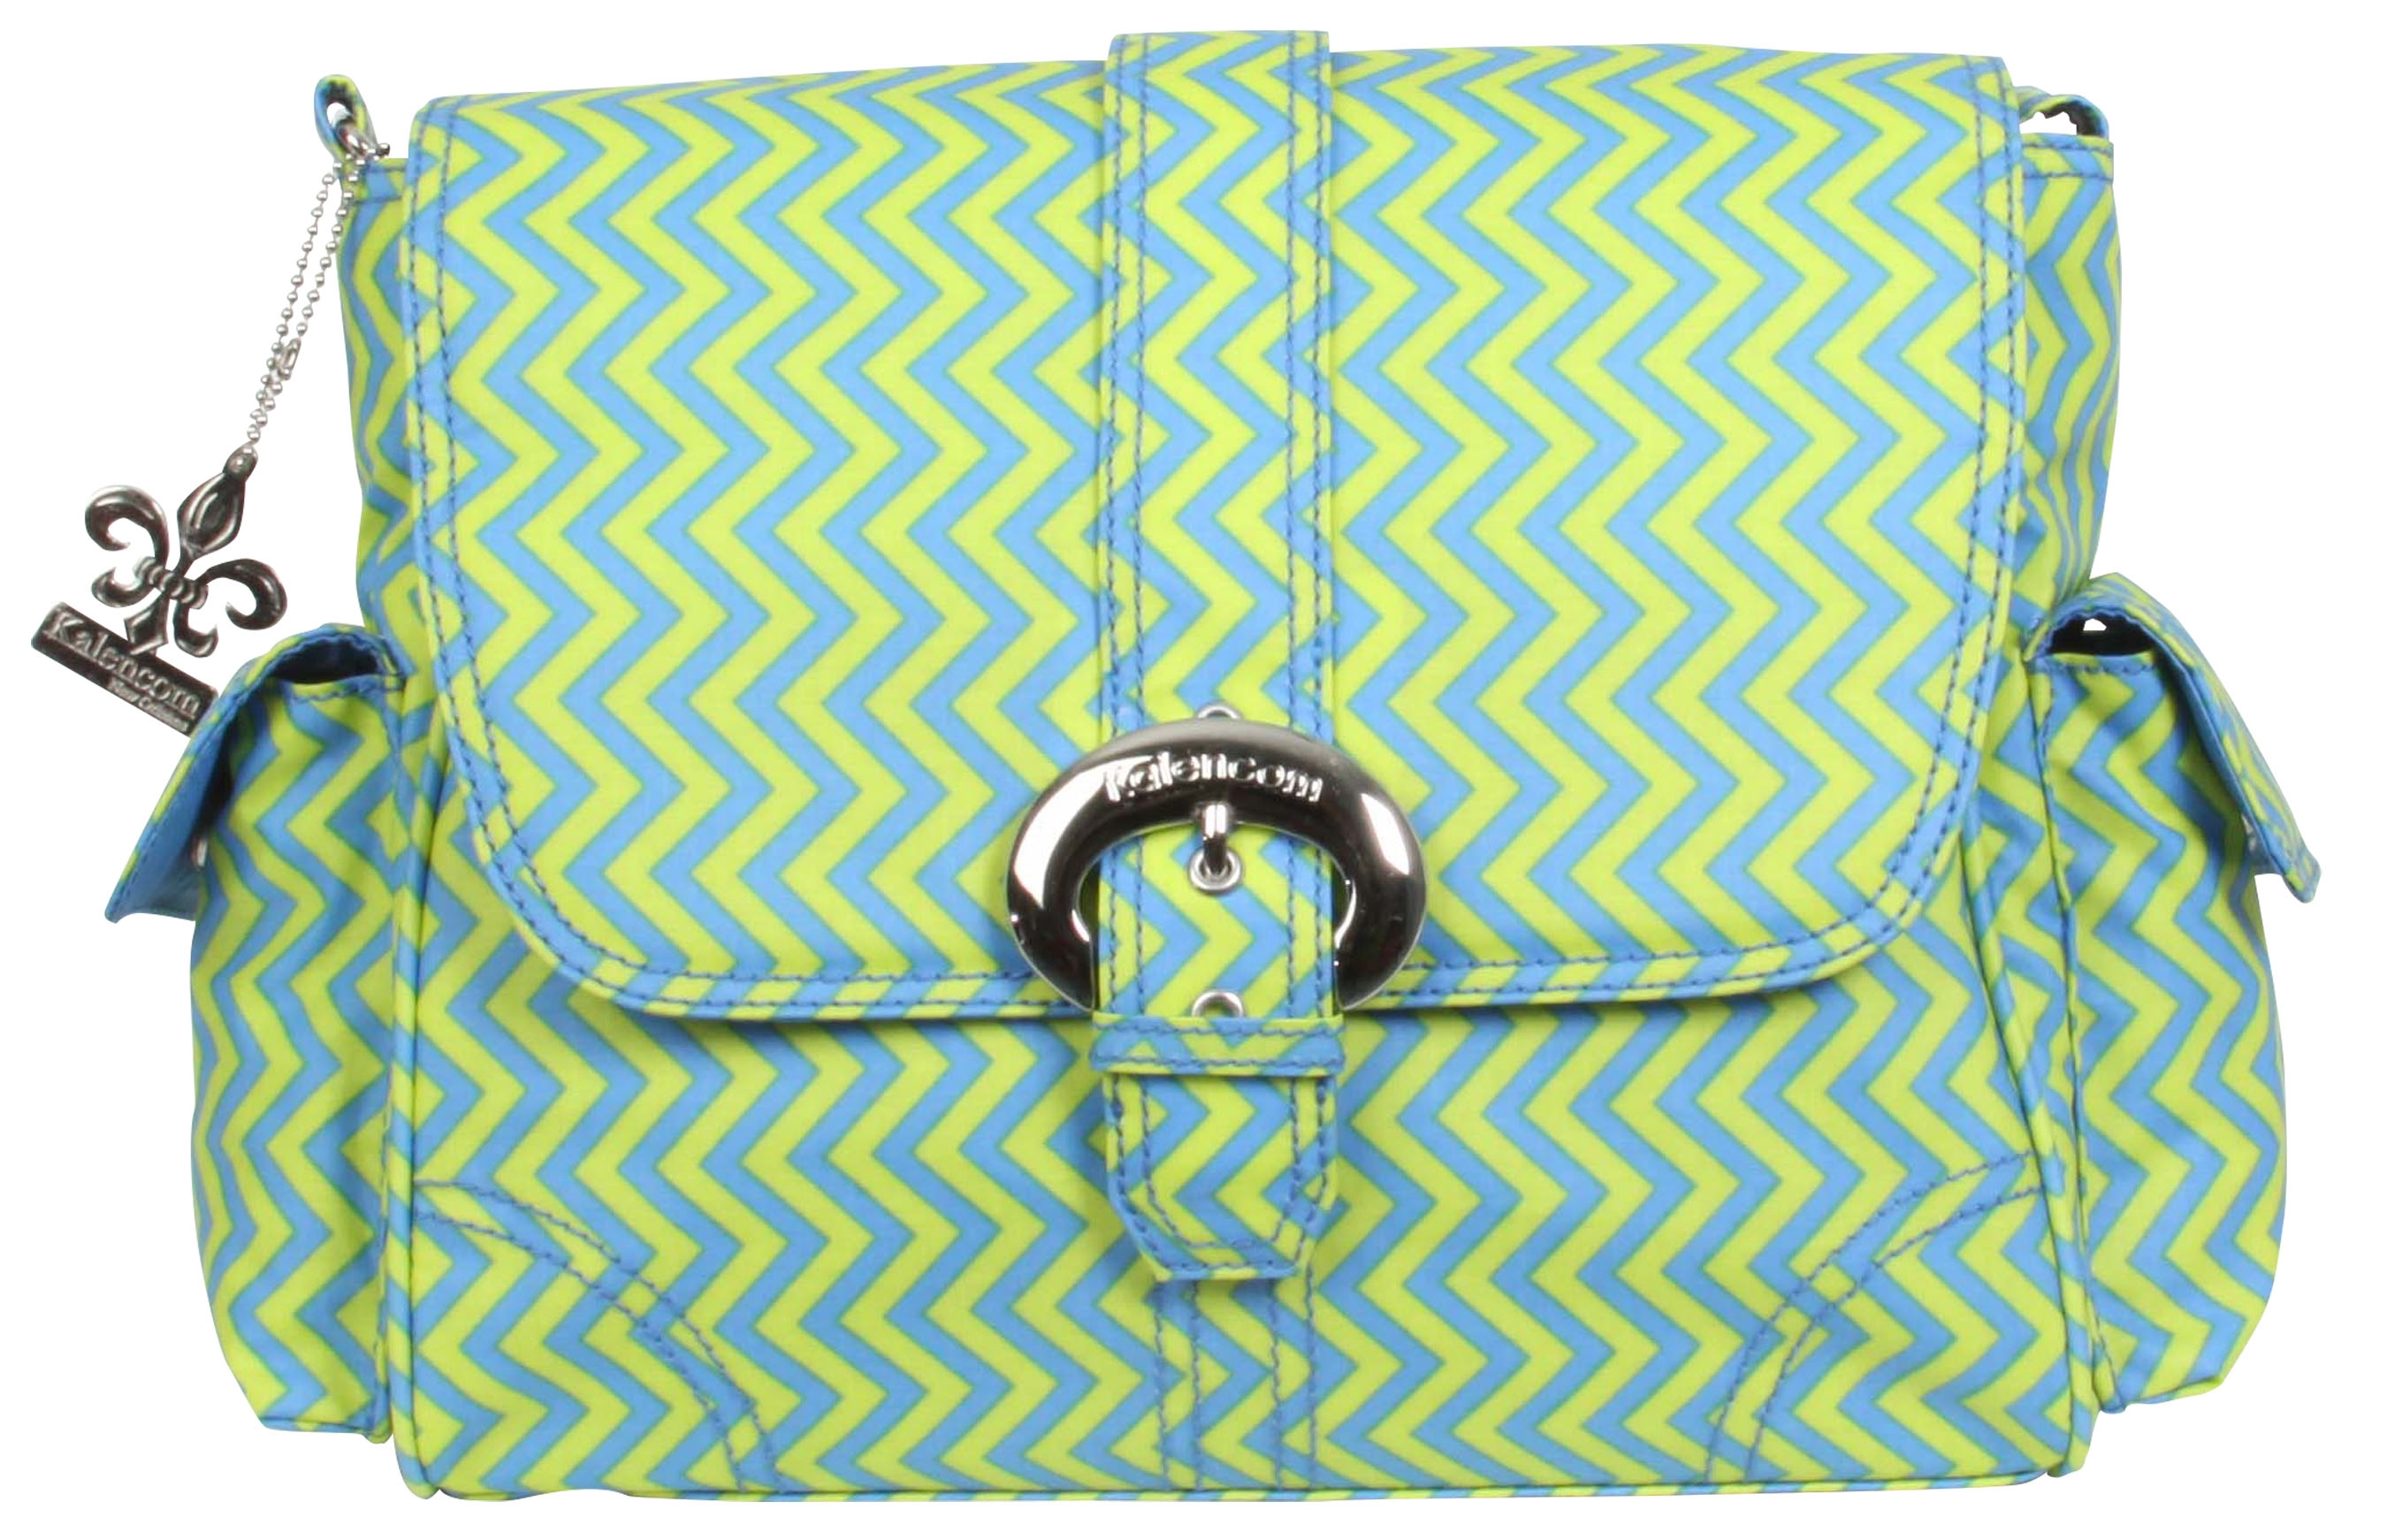 Index Of Visitorkalencomolder Diaper Bags Images & Descriptionsstyle 2959 Midi